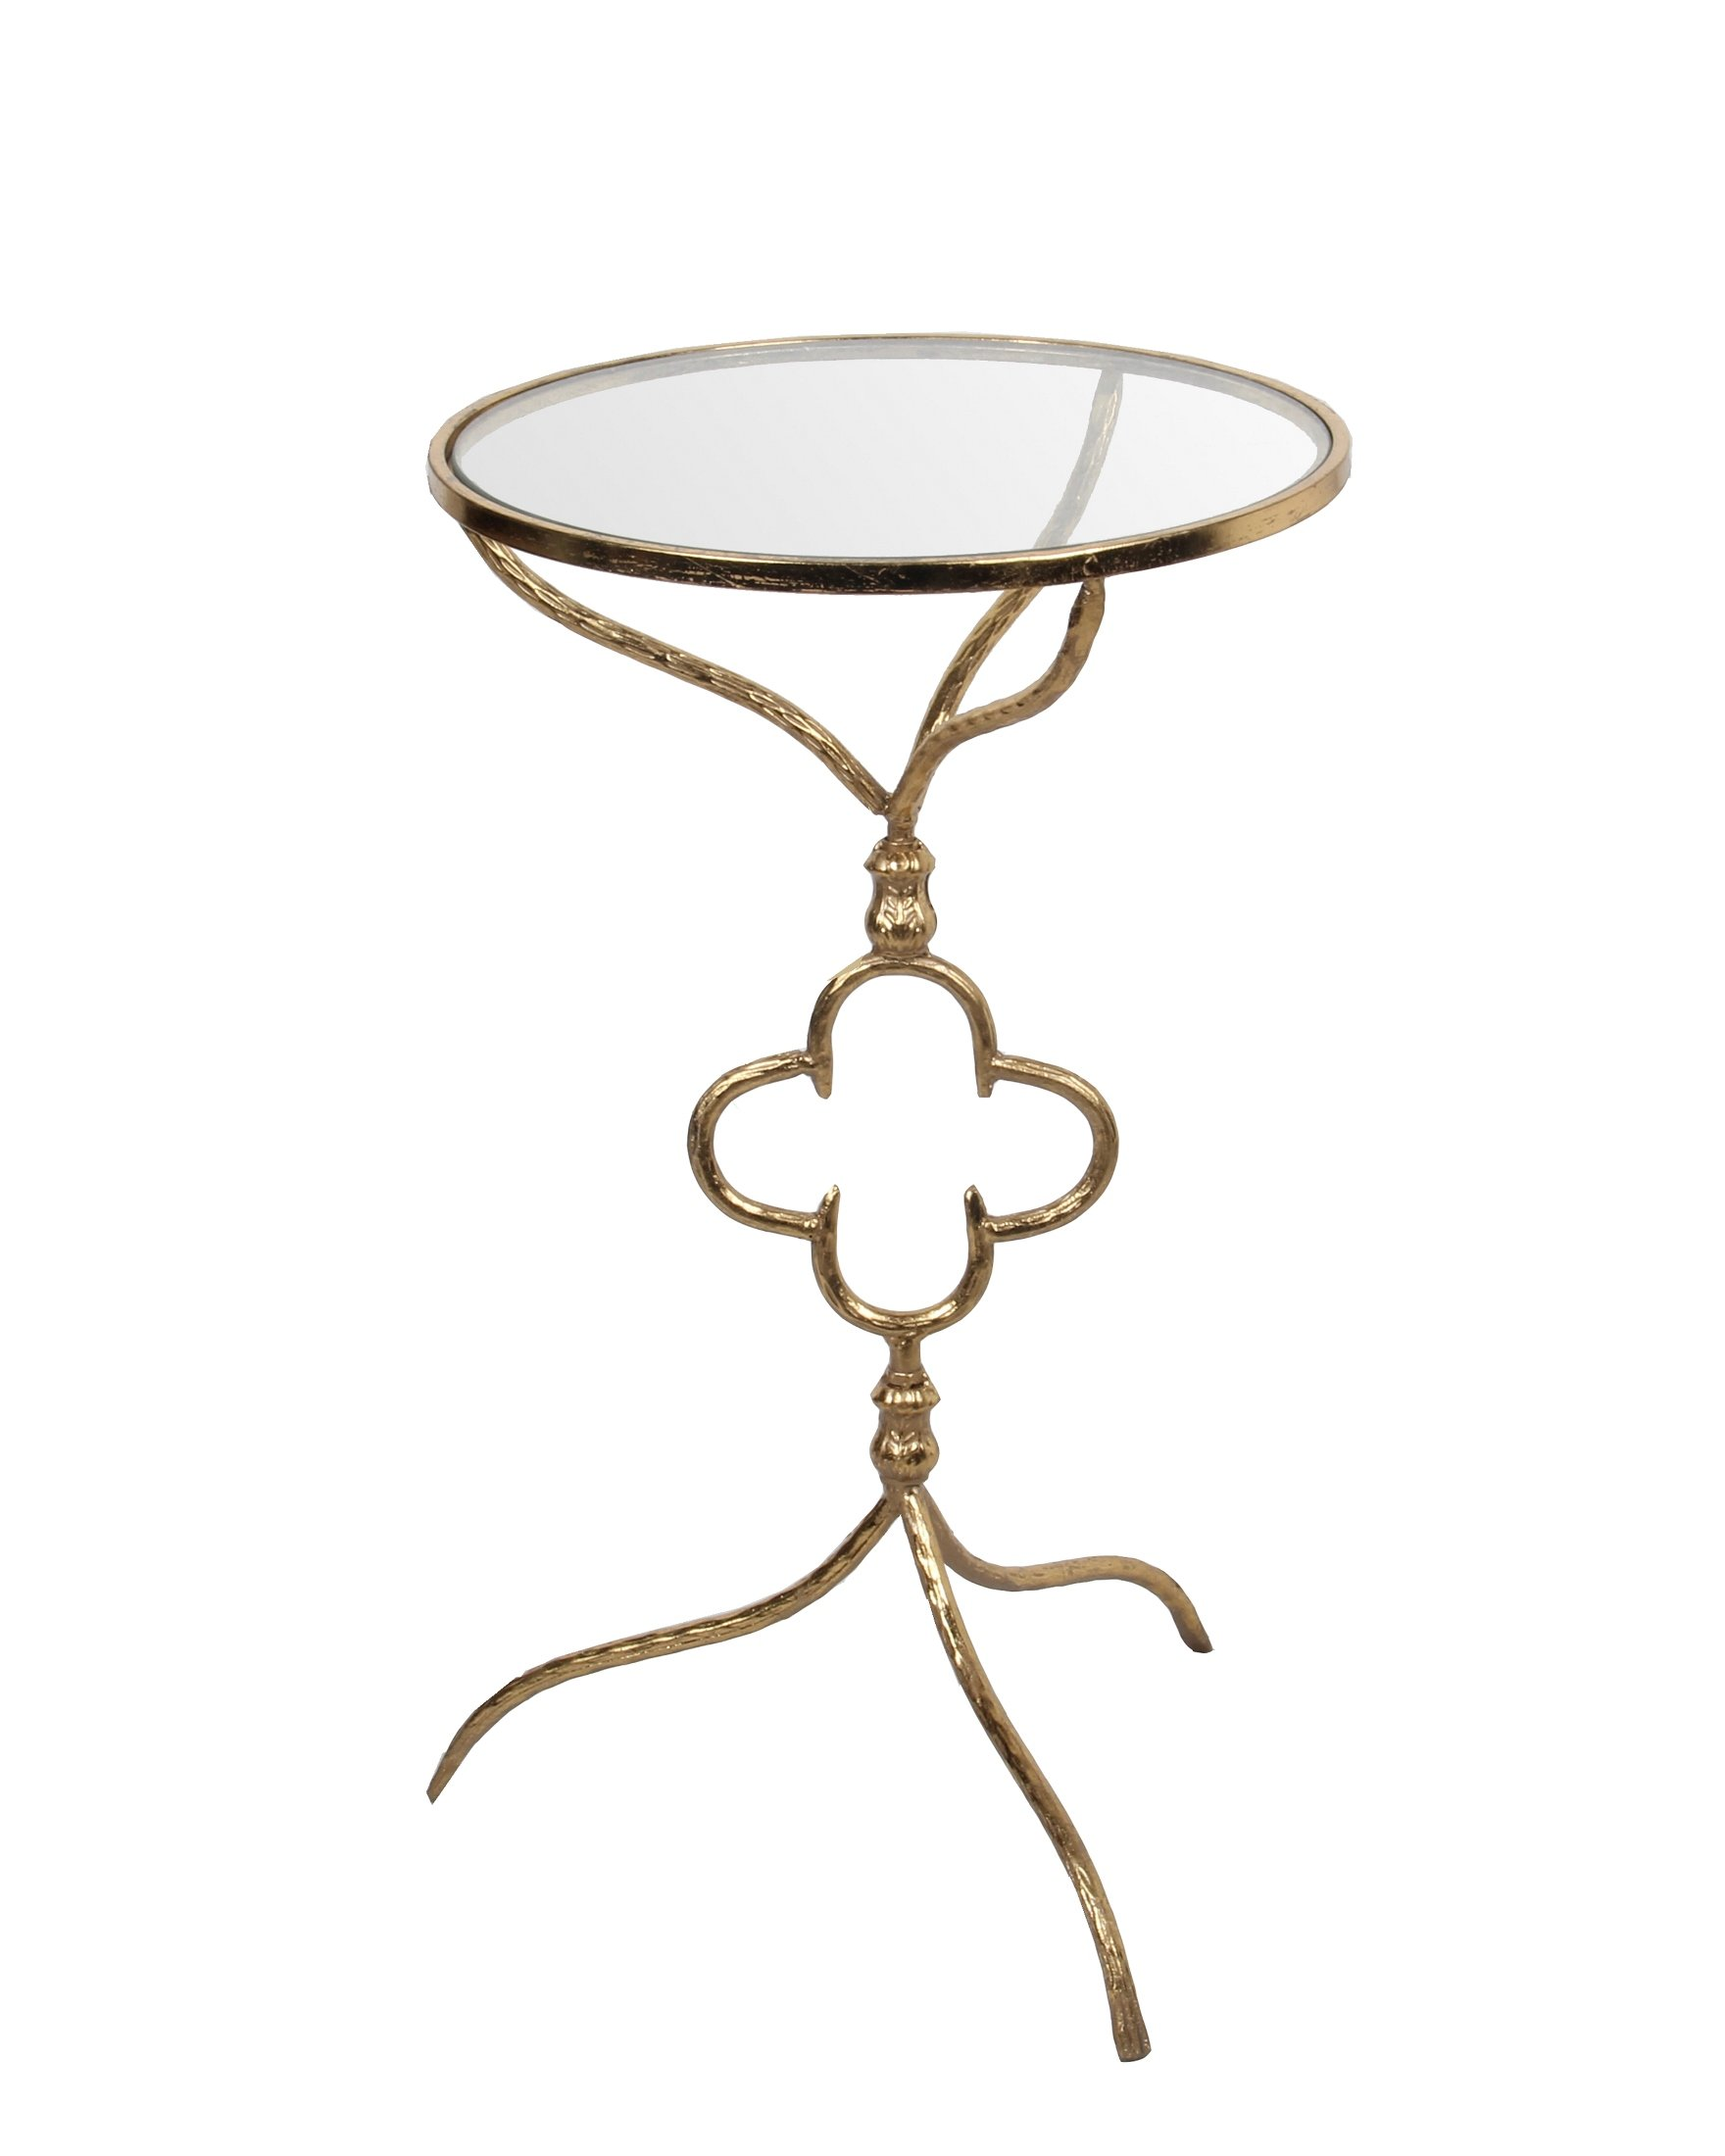 Privilege 18801 Decorative Iron and Glass Table, Gold